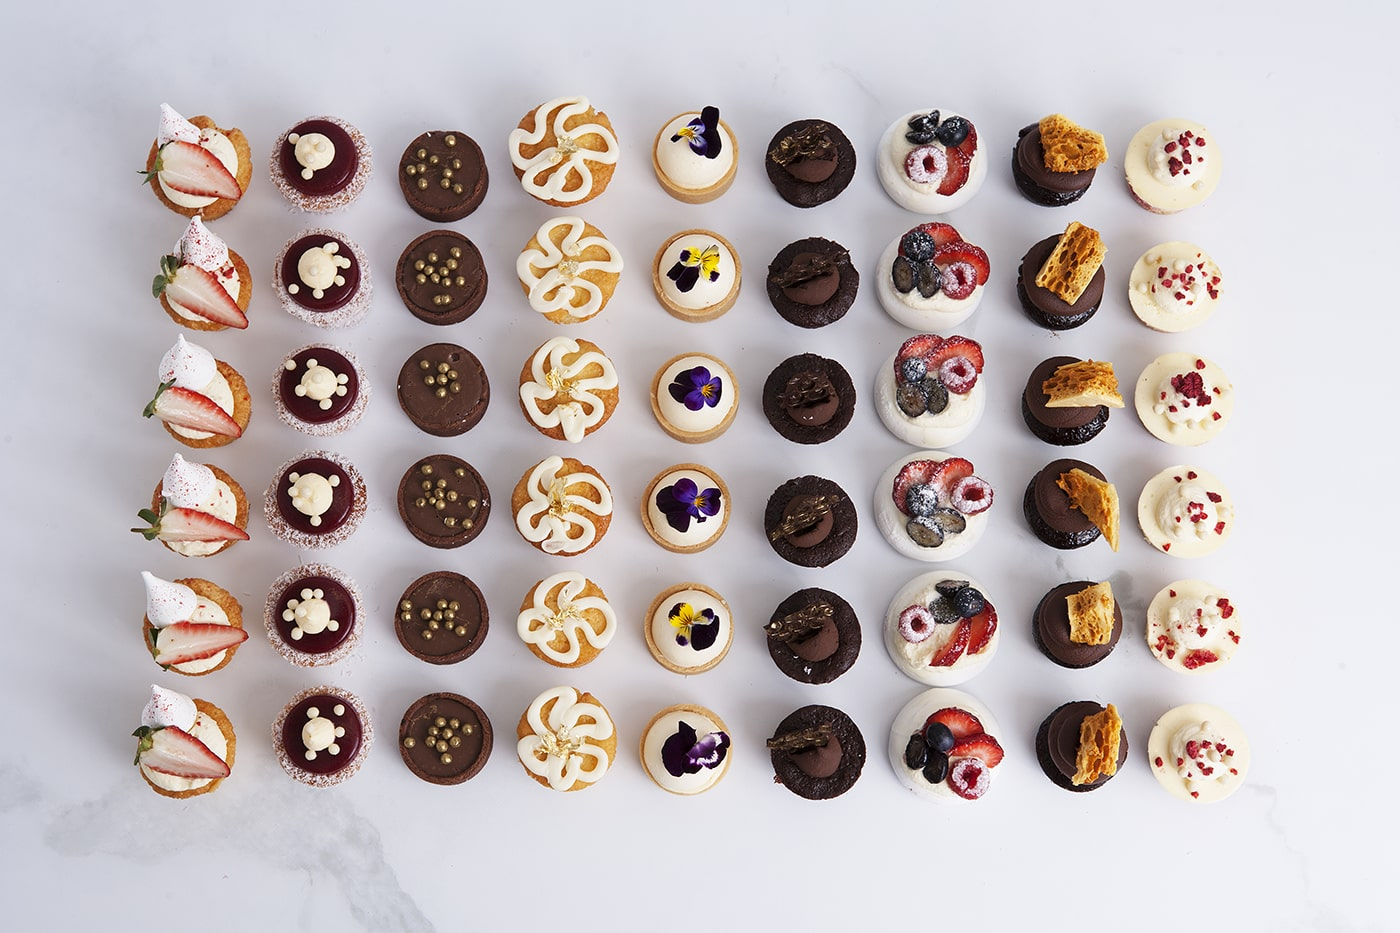 Mrs Jones The Baker mini cakes for catering events, parties and birthdays